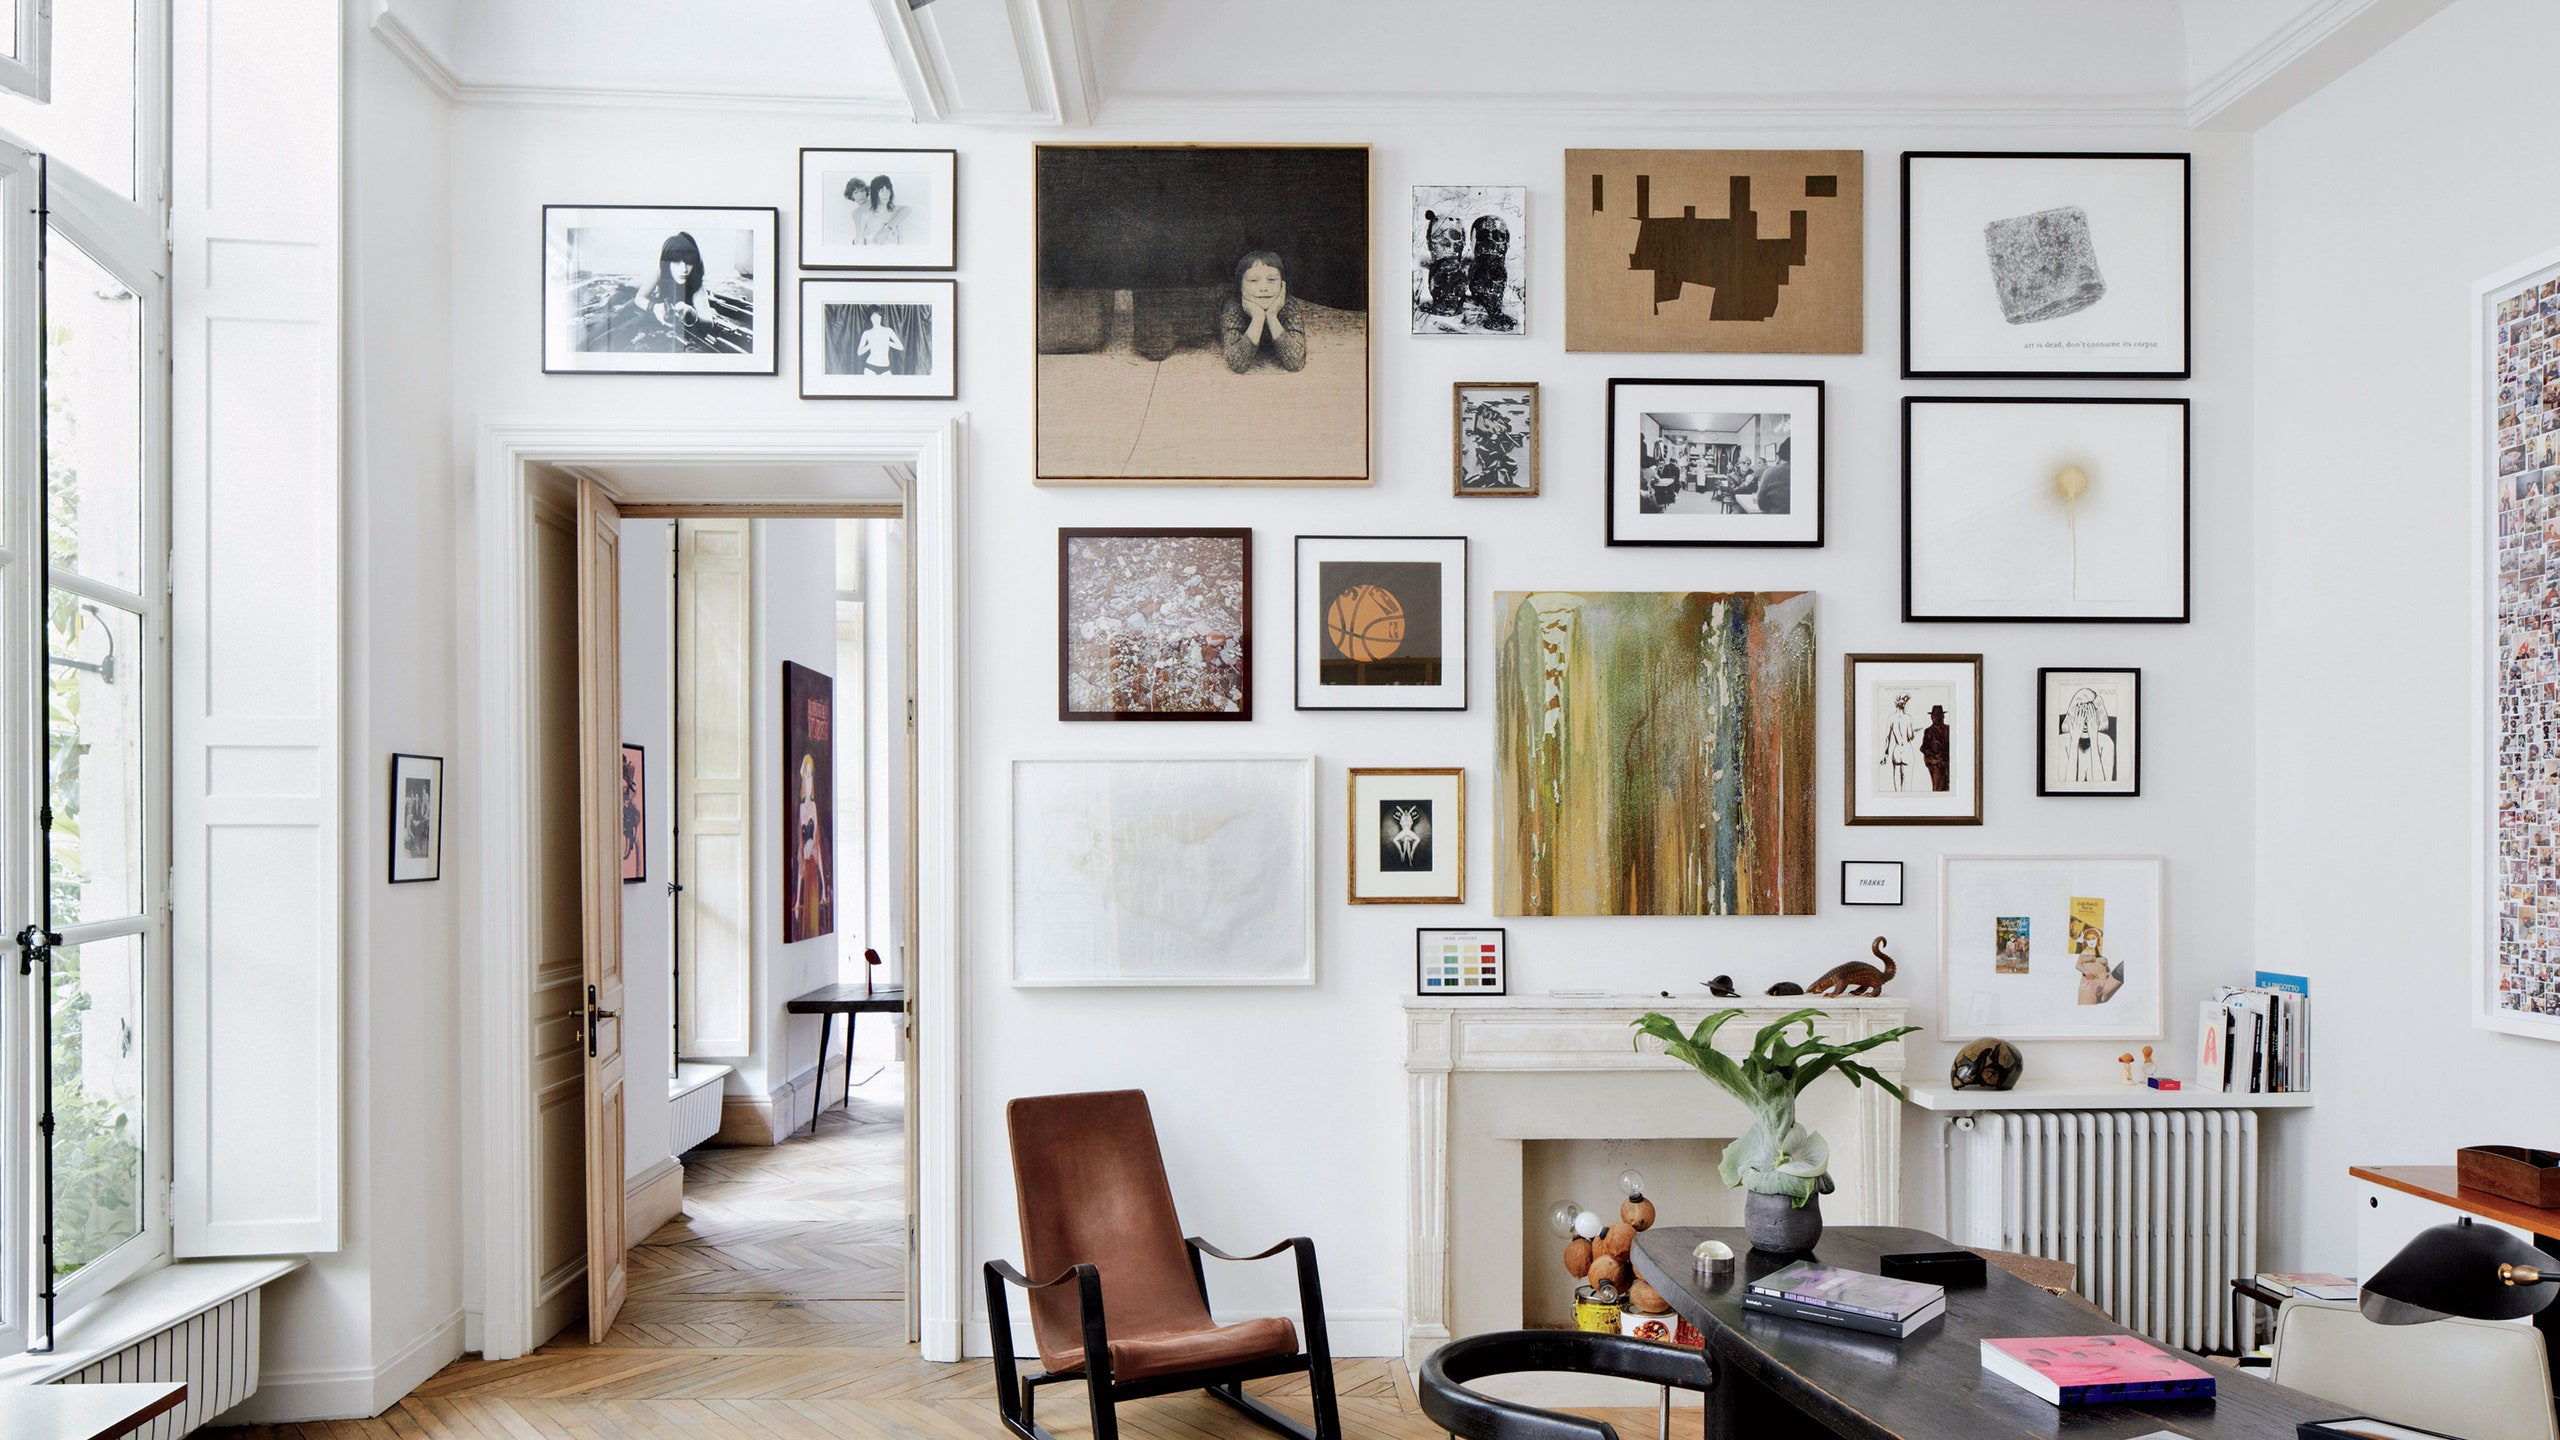 How do I decorate walls in a room? Best options